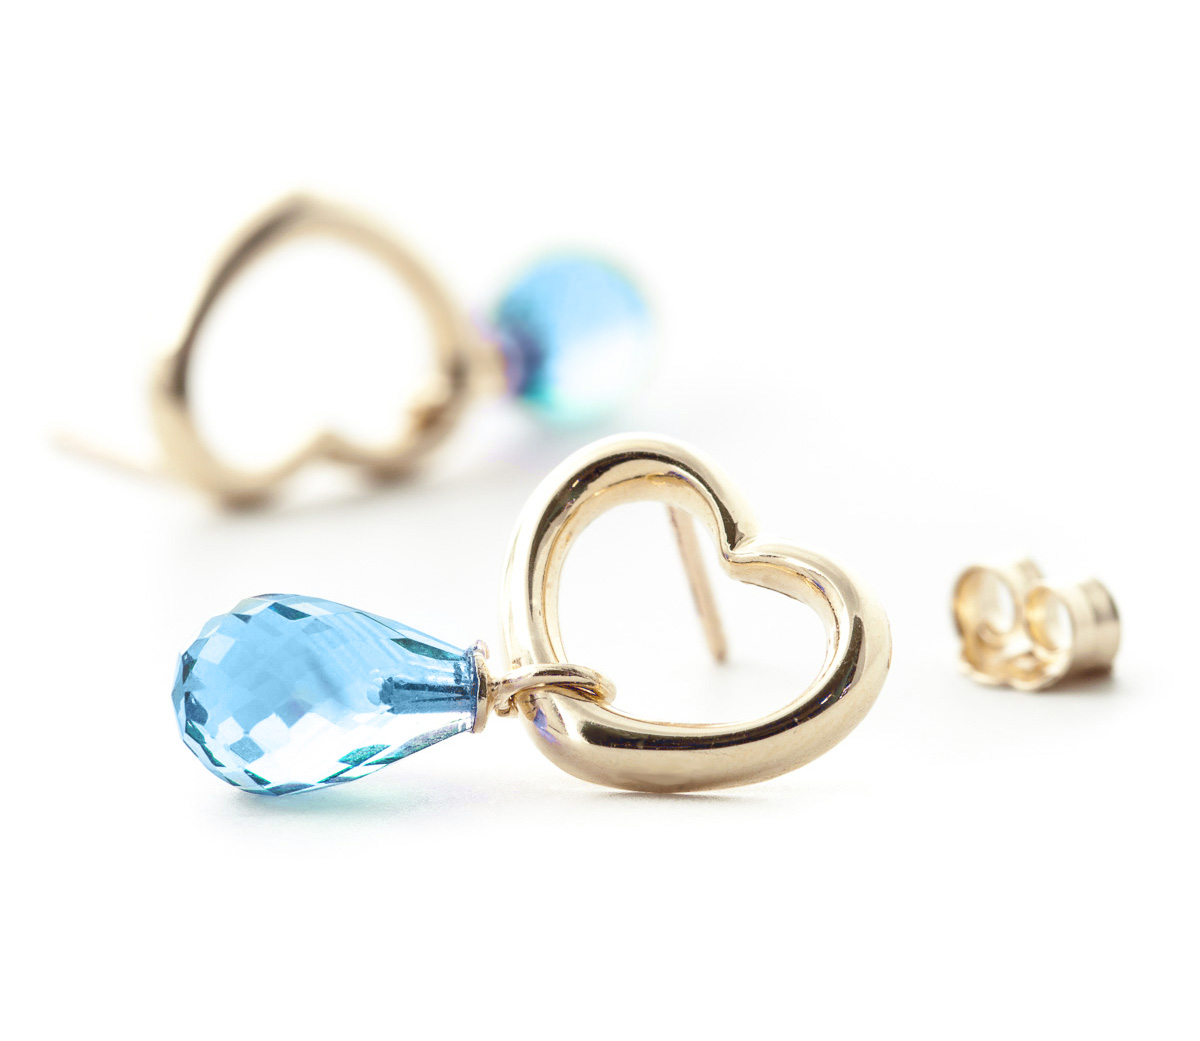 Blue Topaz Stud Earrings 4.5ctw in 9ct Gold